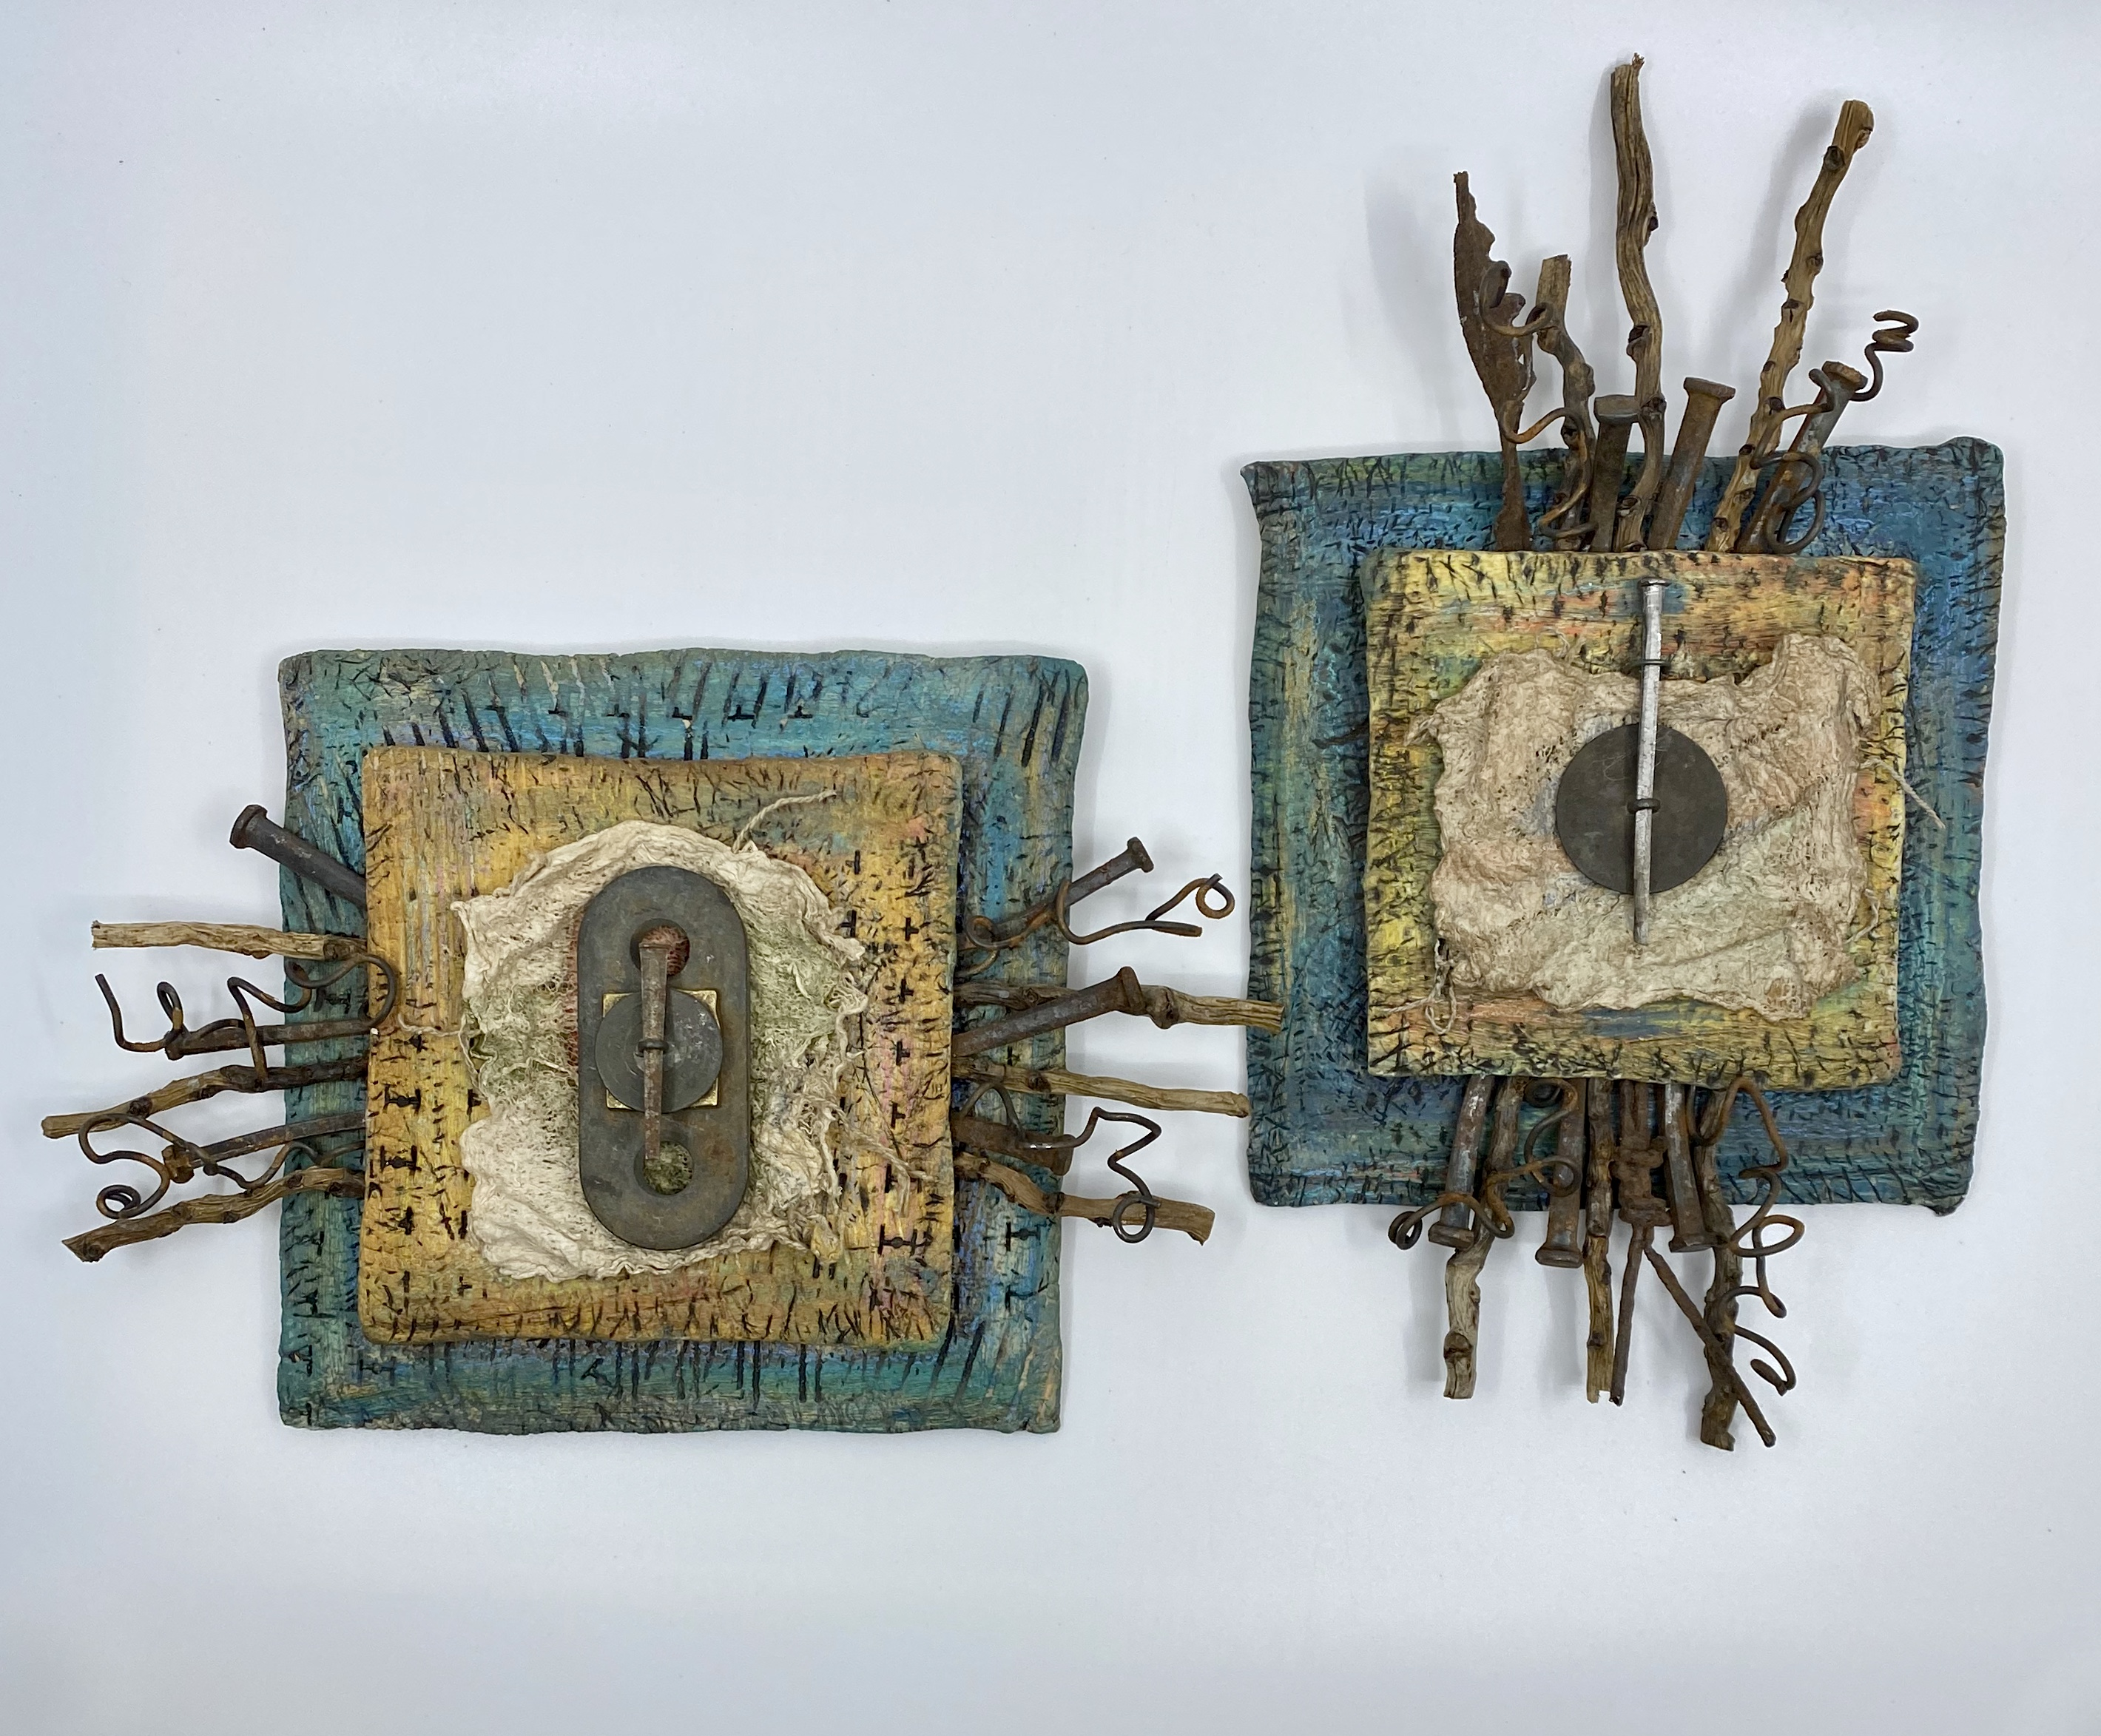 Wall Pieces with Found Objects